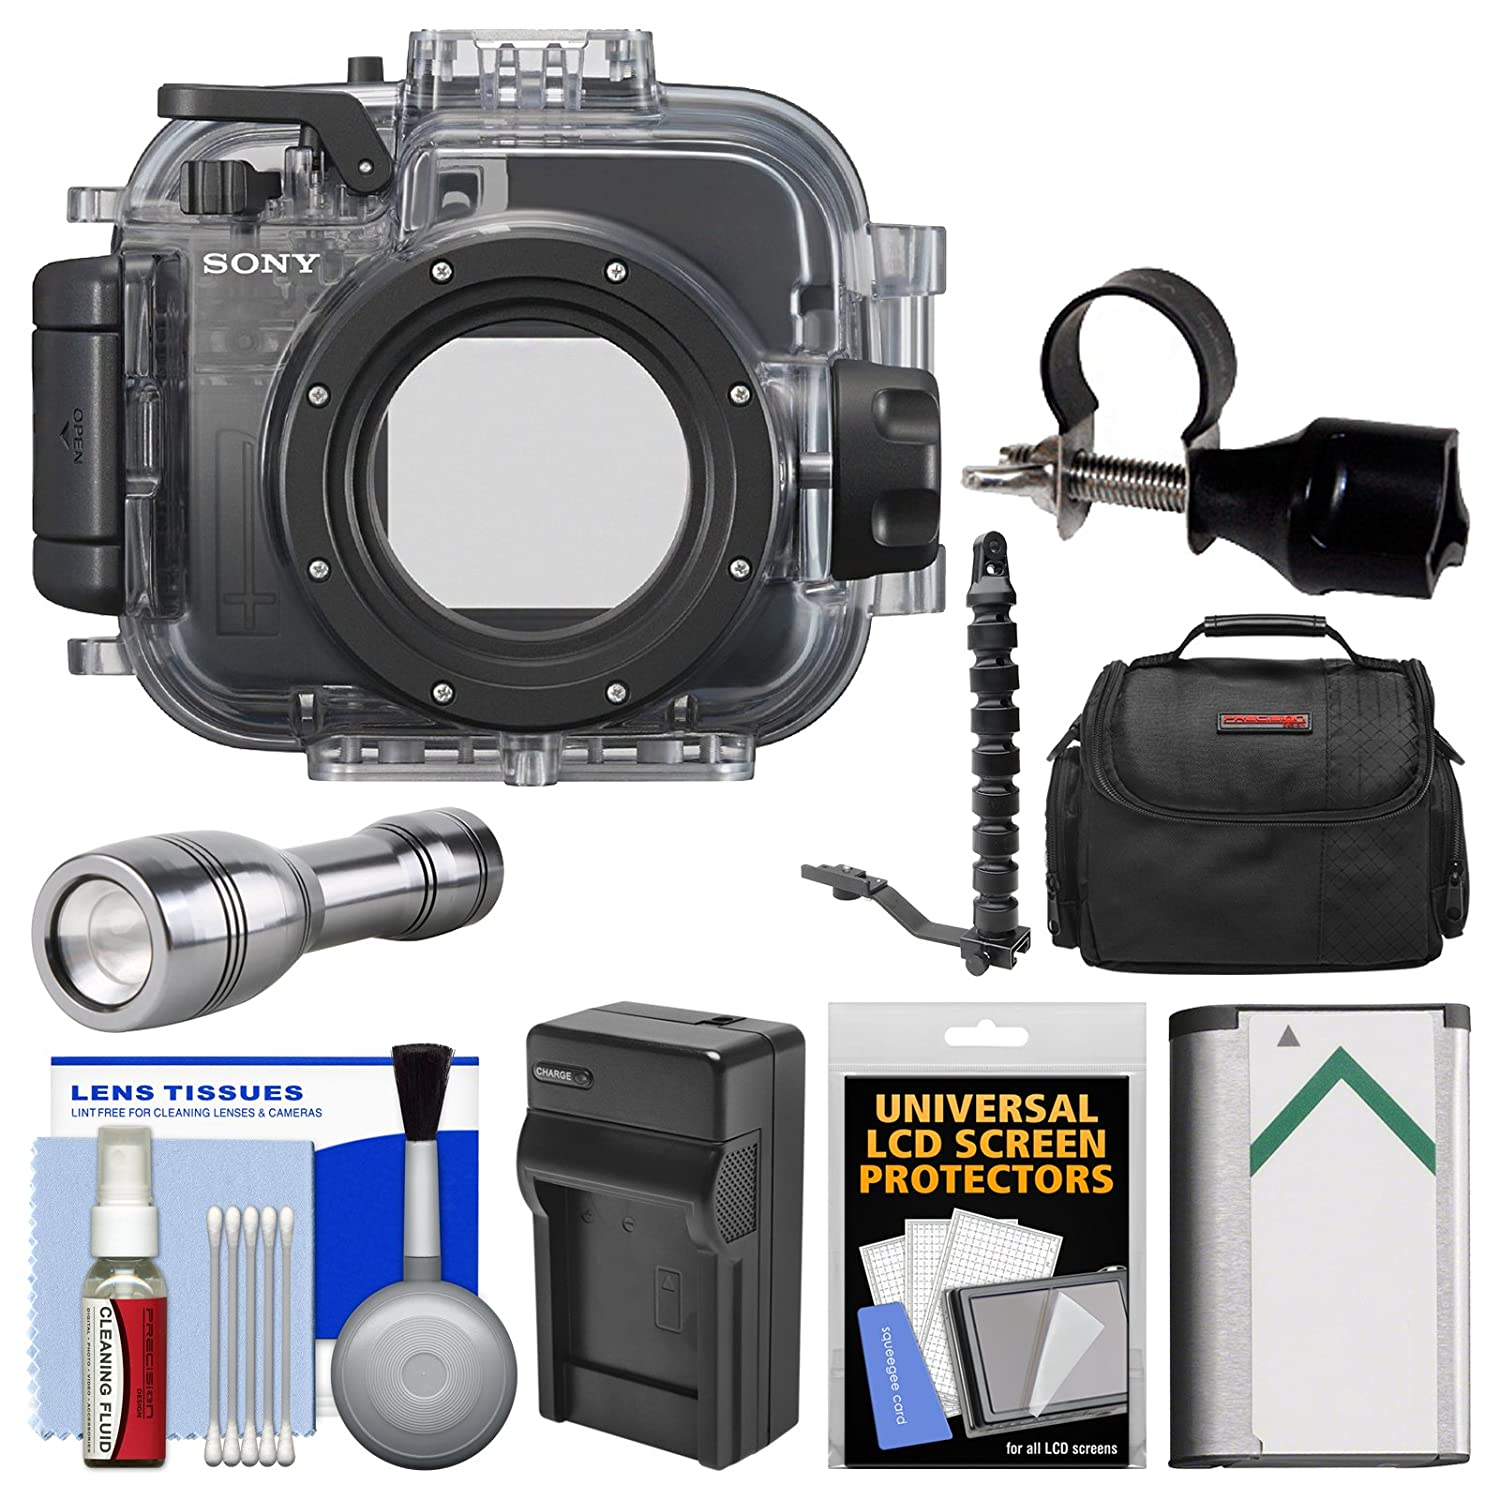 Sony MPK-URX100A Marine Underwater Housing Case for RX100, II, III, IV & V Digital Cameras with Flashlight + Flex Arm + Battery & Charger + Case Kit